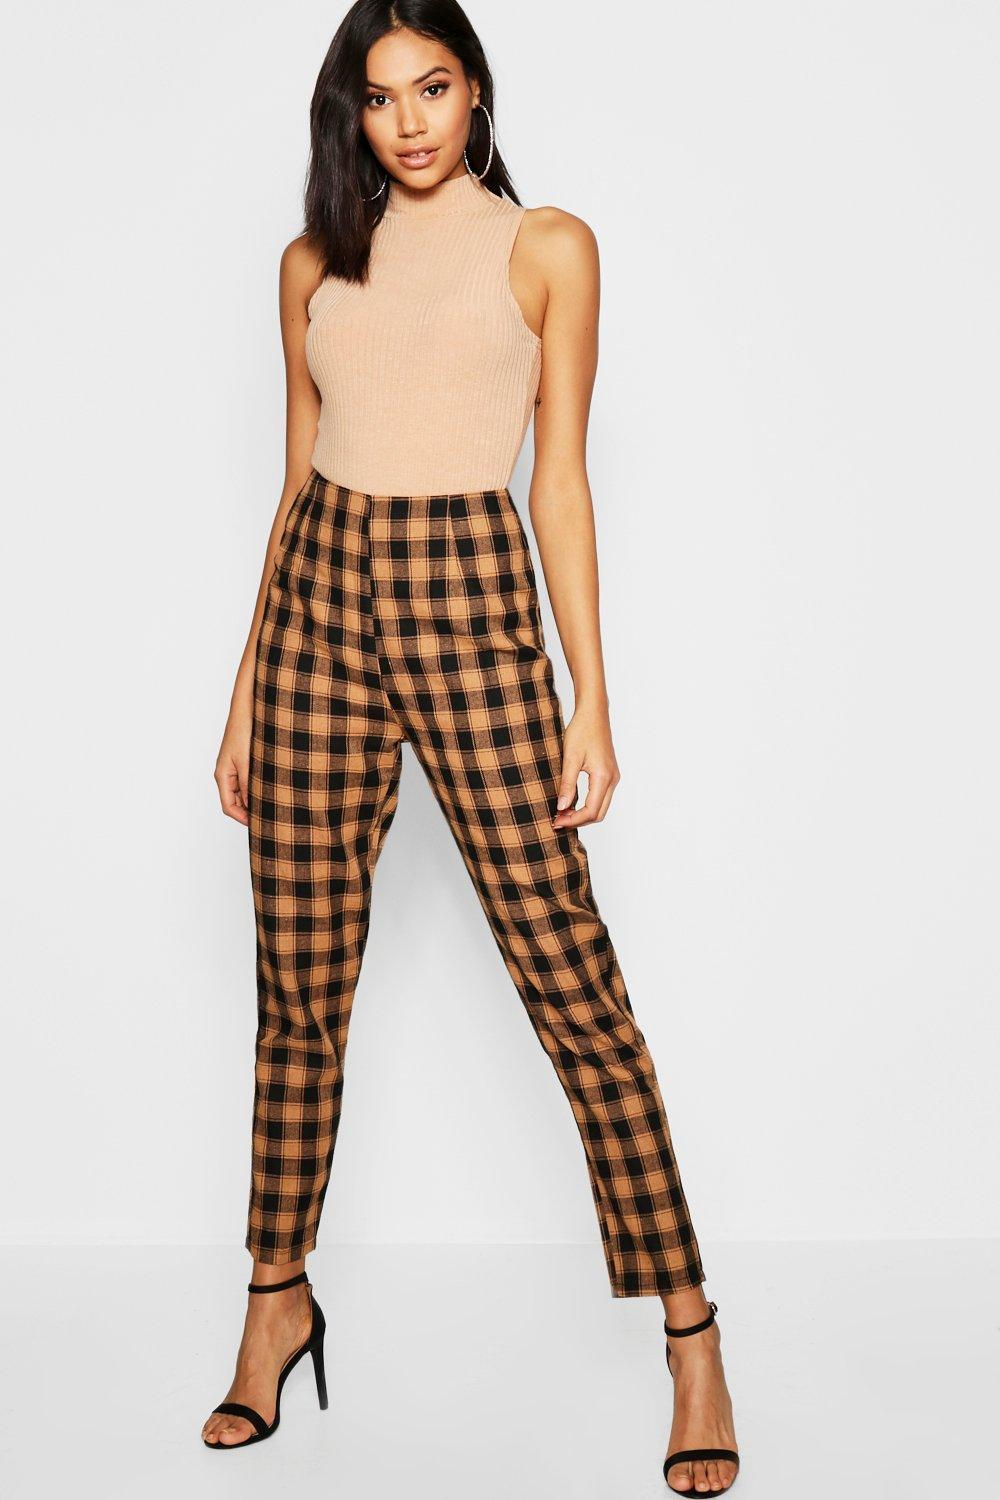 6dd0cd583ff5 Boohoo. Women's Brown Woven Check Print Tapered Trousers